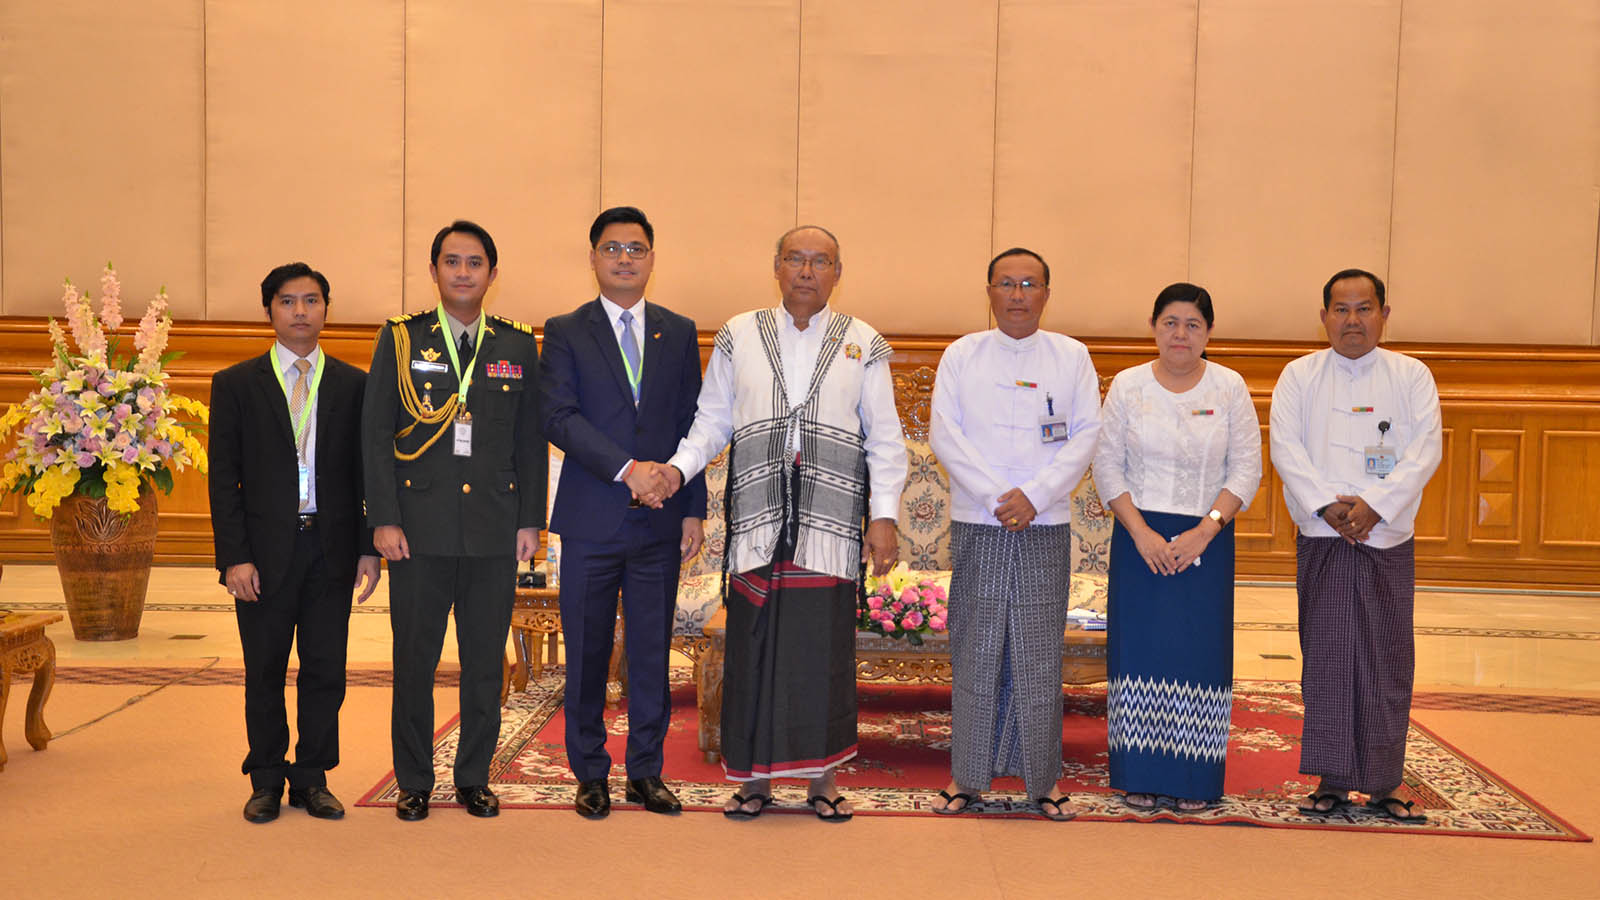 Amyotha Hluttaw Speaker  Mahn Win Khaing Than poses for a photo with Cambodian Ambassador Mr Chhouk Bunna in Nay Pyi Taw.Photo: MNA